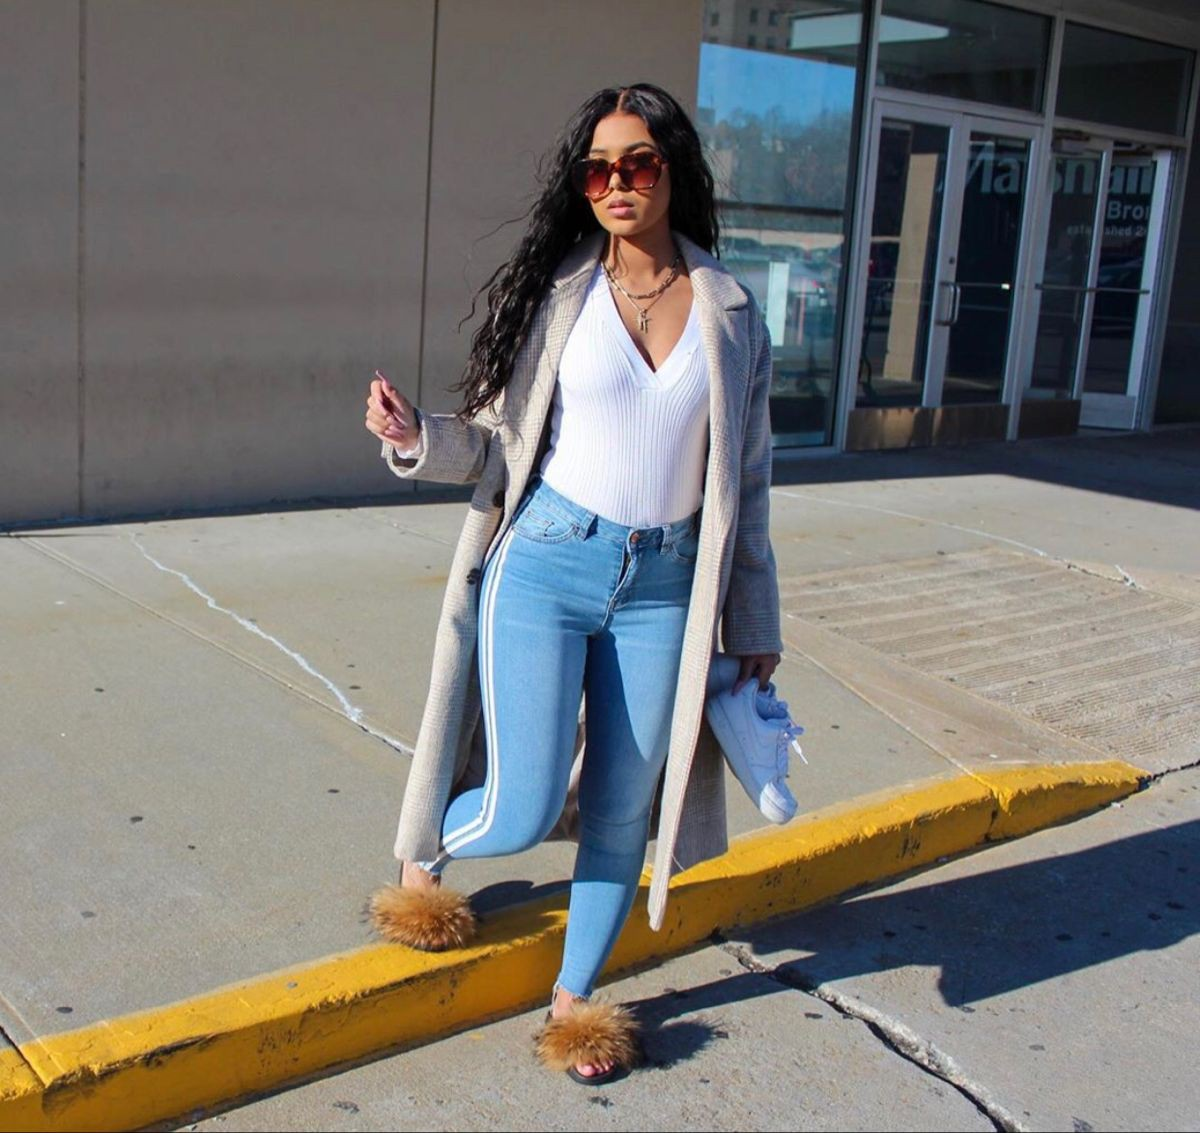 Naysha Wiley trousers, denim, jeans outfits for women